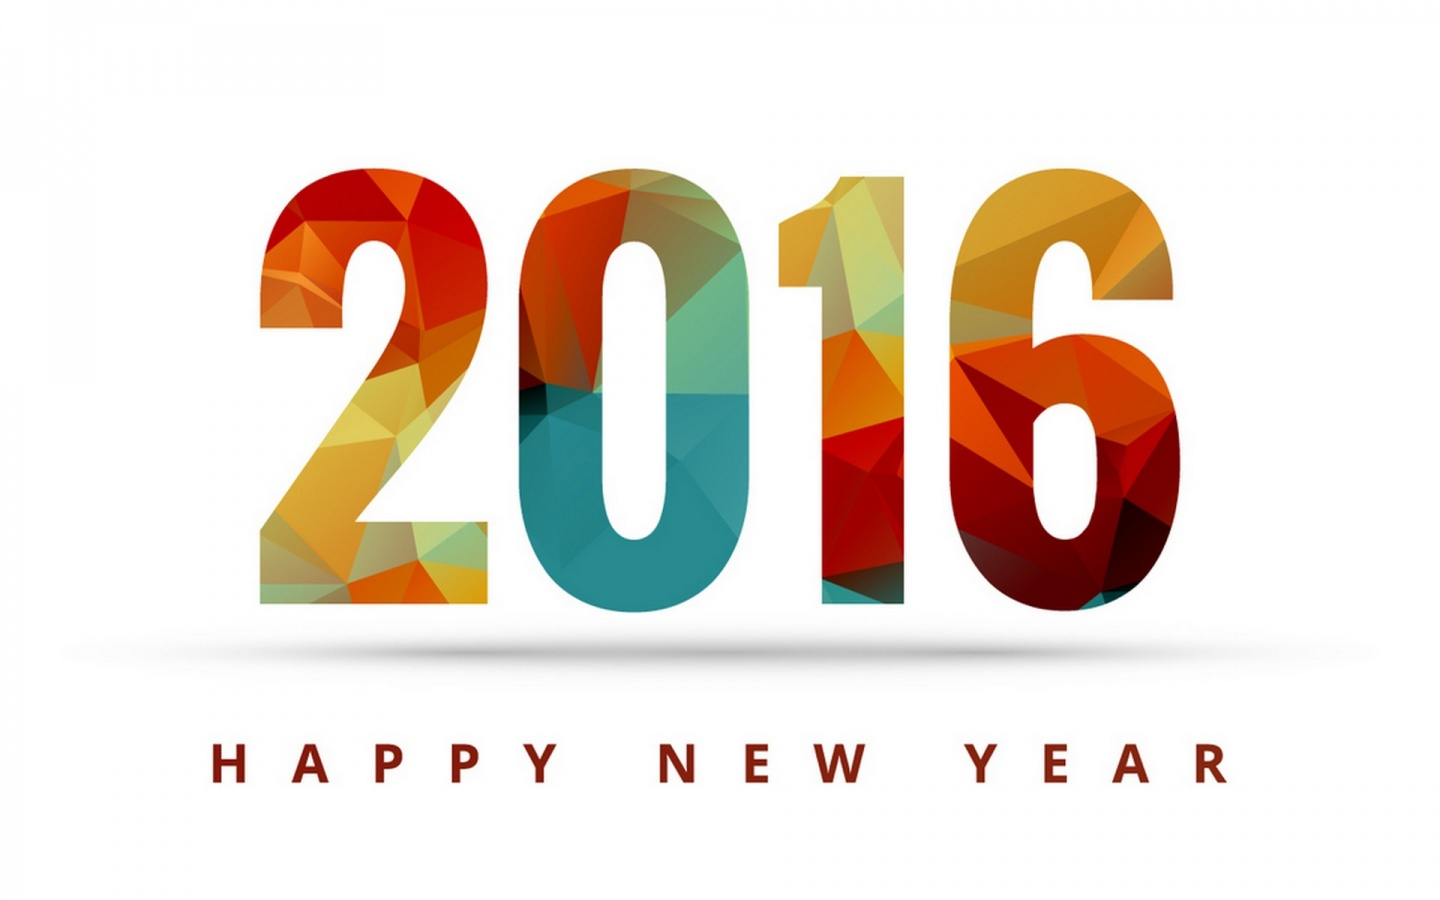 2016 Happy New Year Wallpapers HD Wallpapers 1440x900